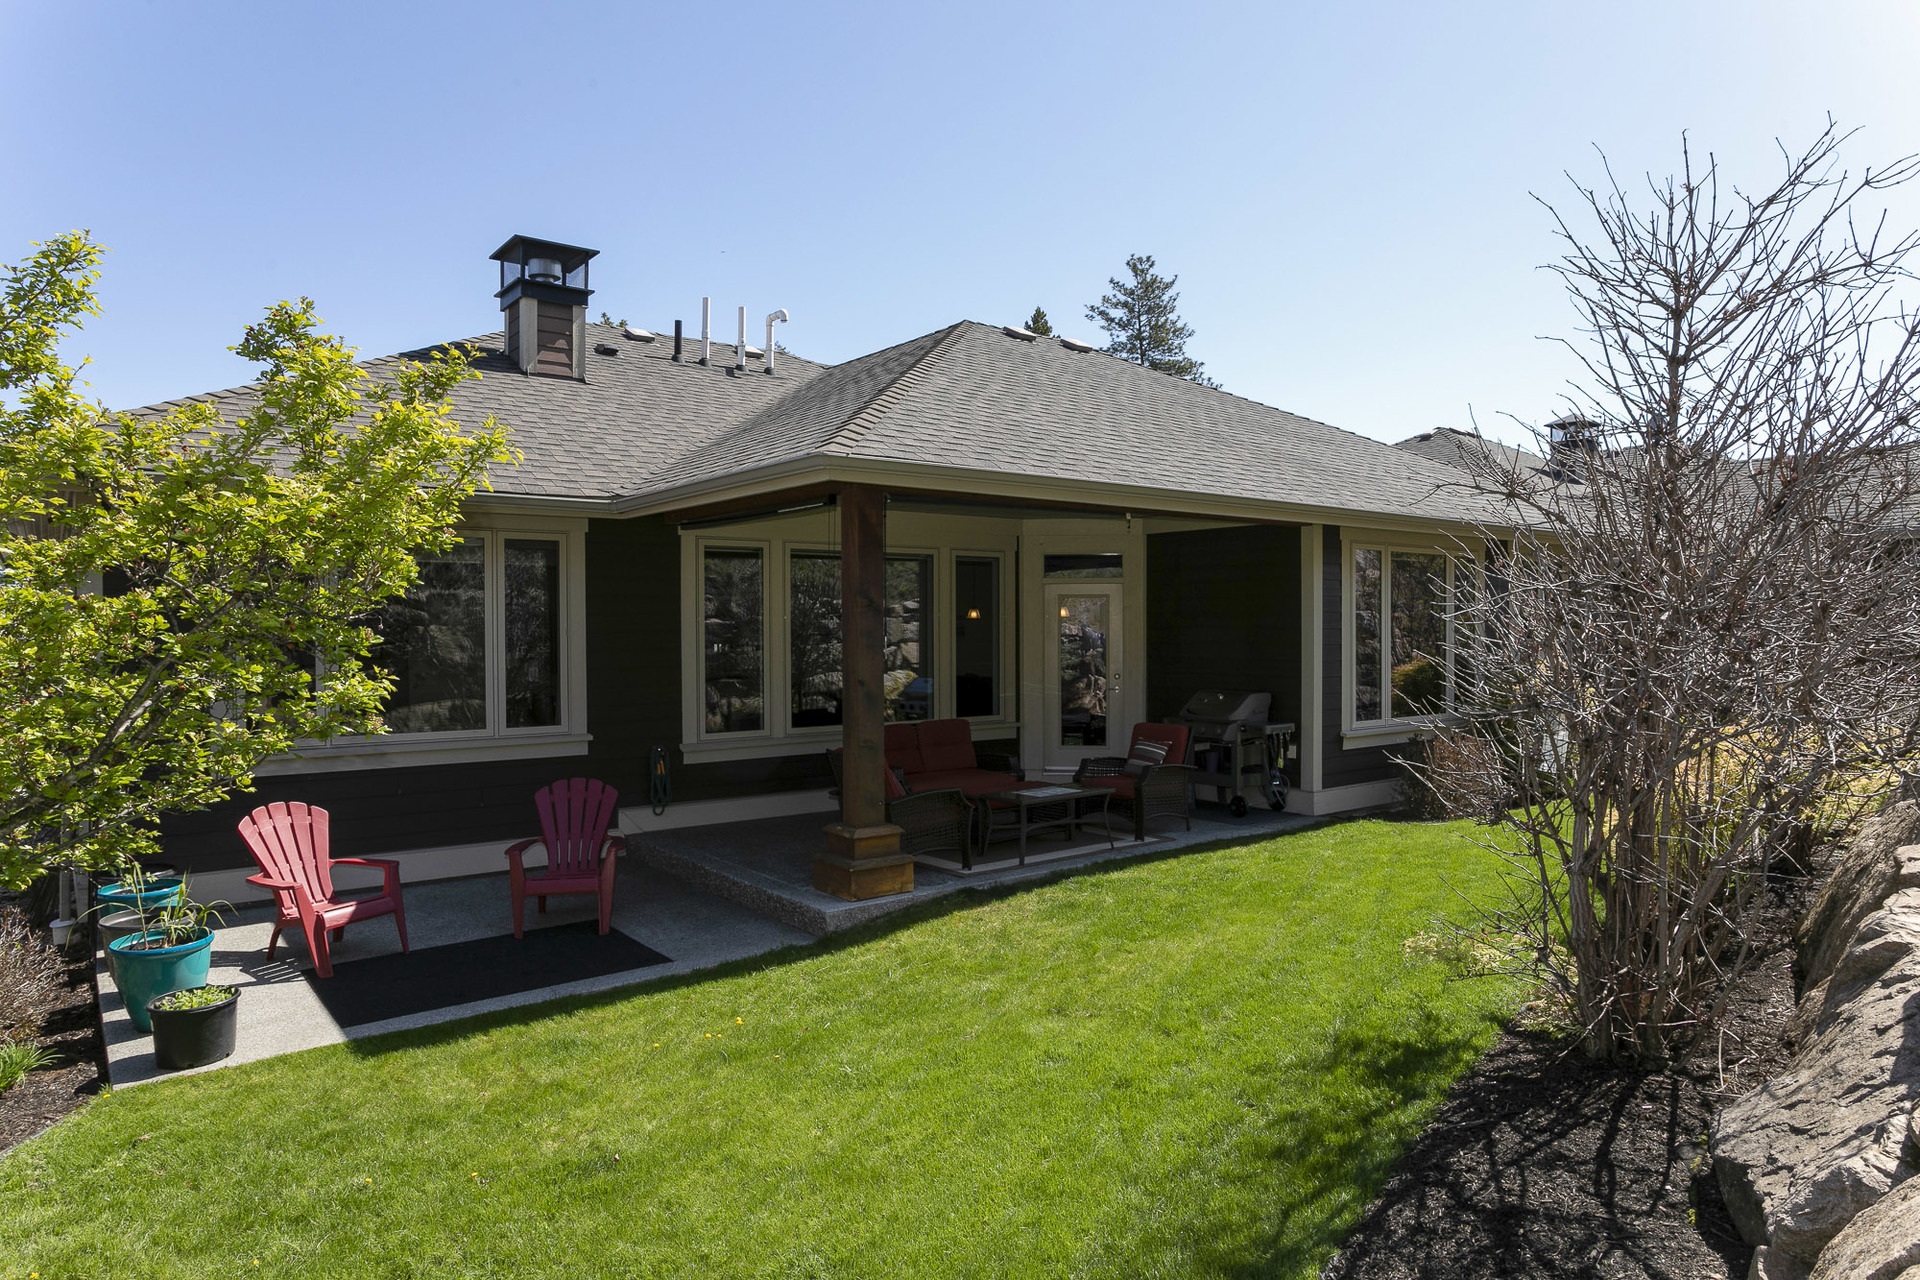 longspoon-dr-428-41 at 428 Longspoon Drive, Vernon, North Okanagan